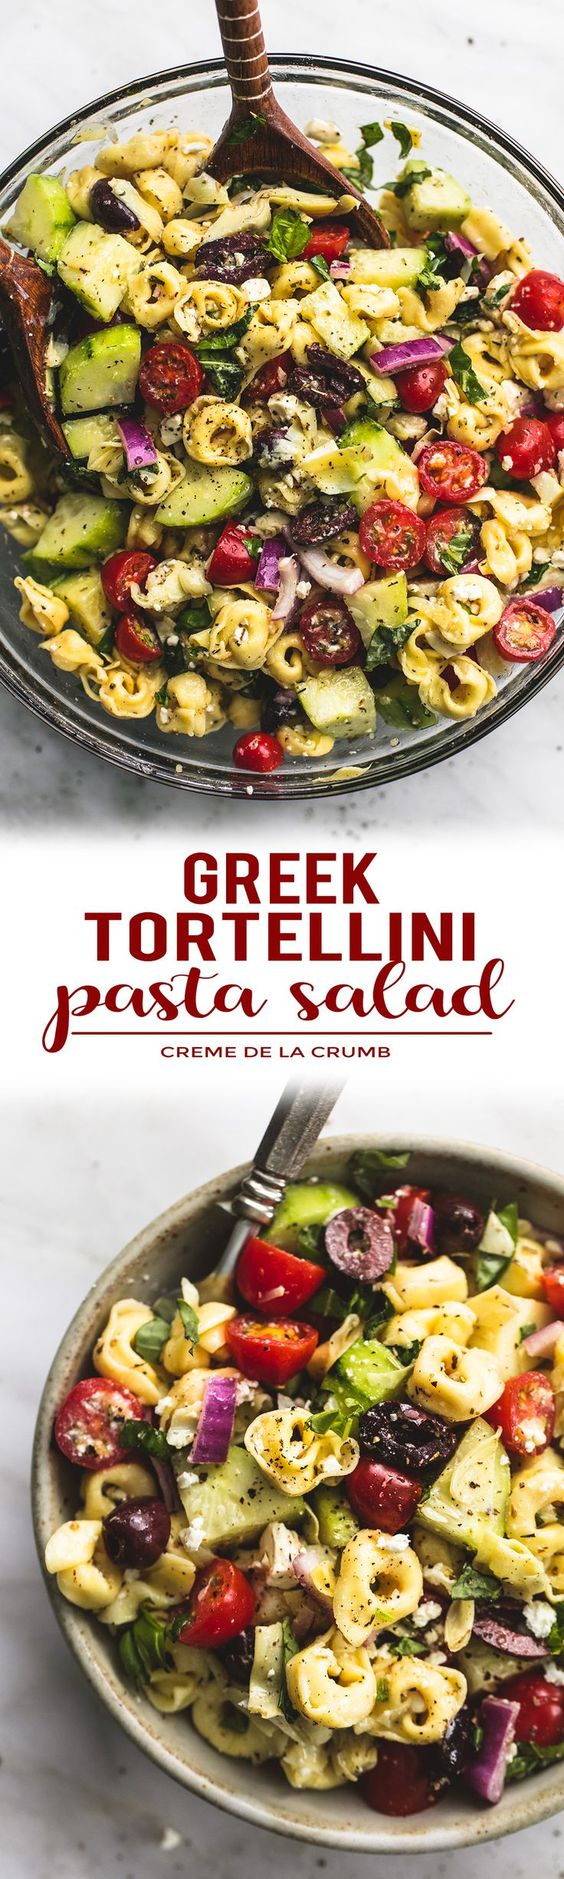 Quick and easy Greek Tortellini Pasta Salad with zesty Greek lemon dressing, fresh veggies, and hearty tortellini pasta will be your go-to potluck and dinner side dish!   lecremedelacrumb.com: